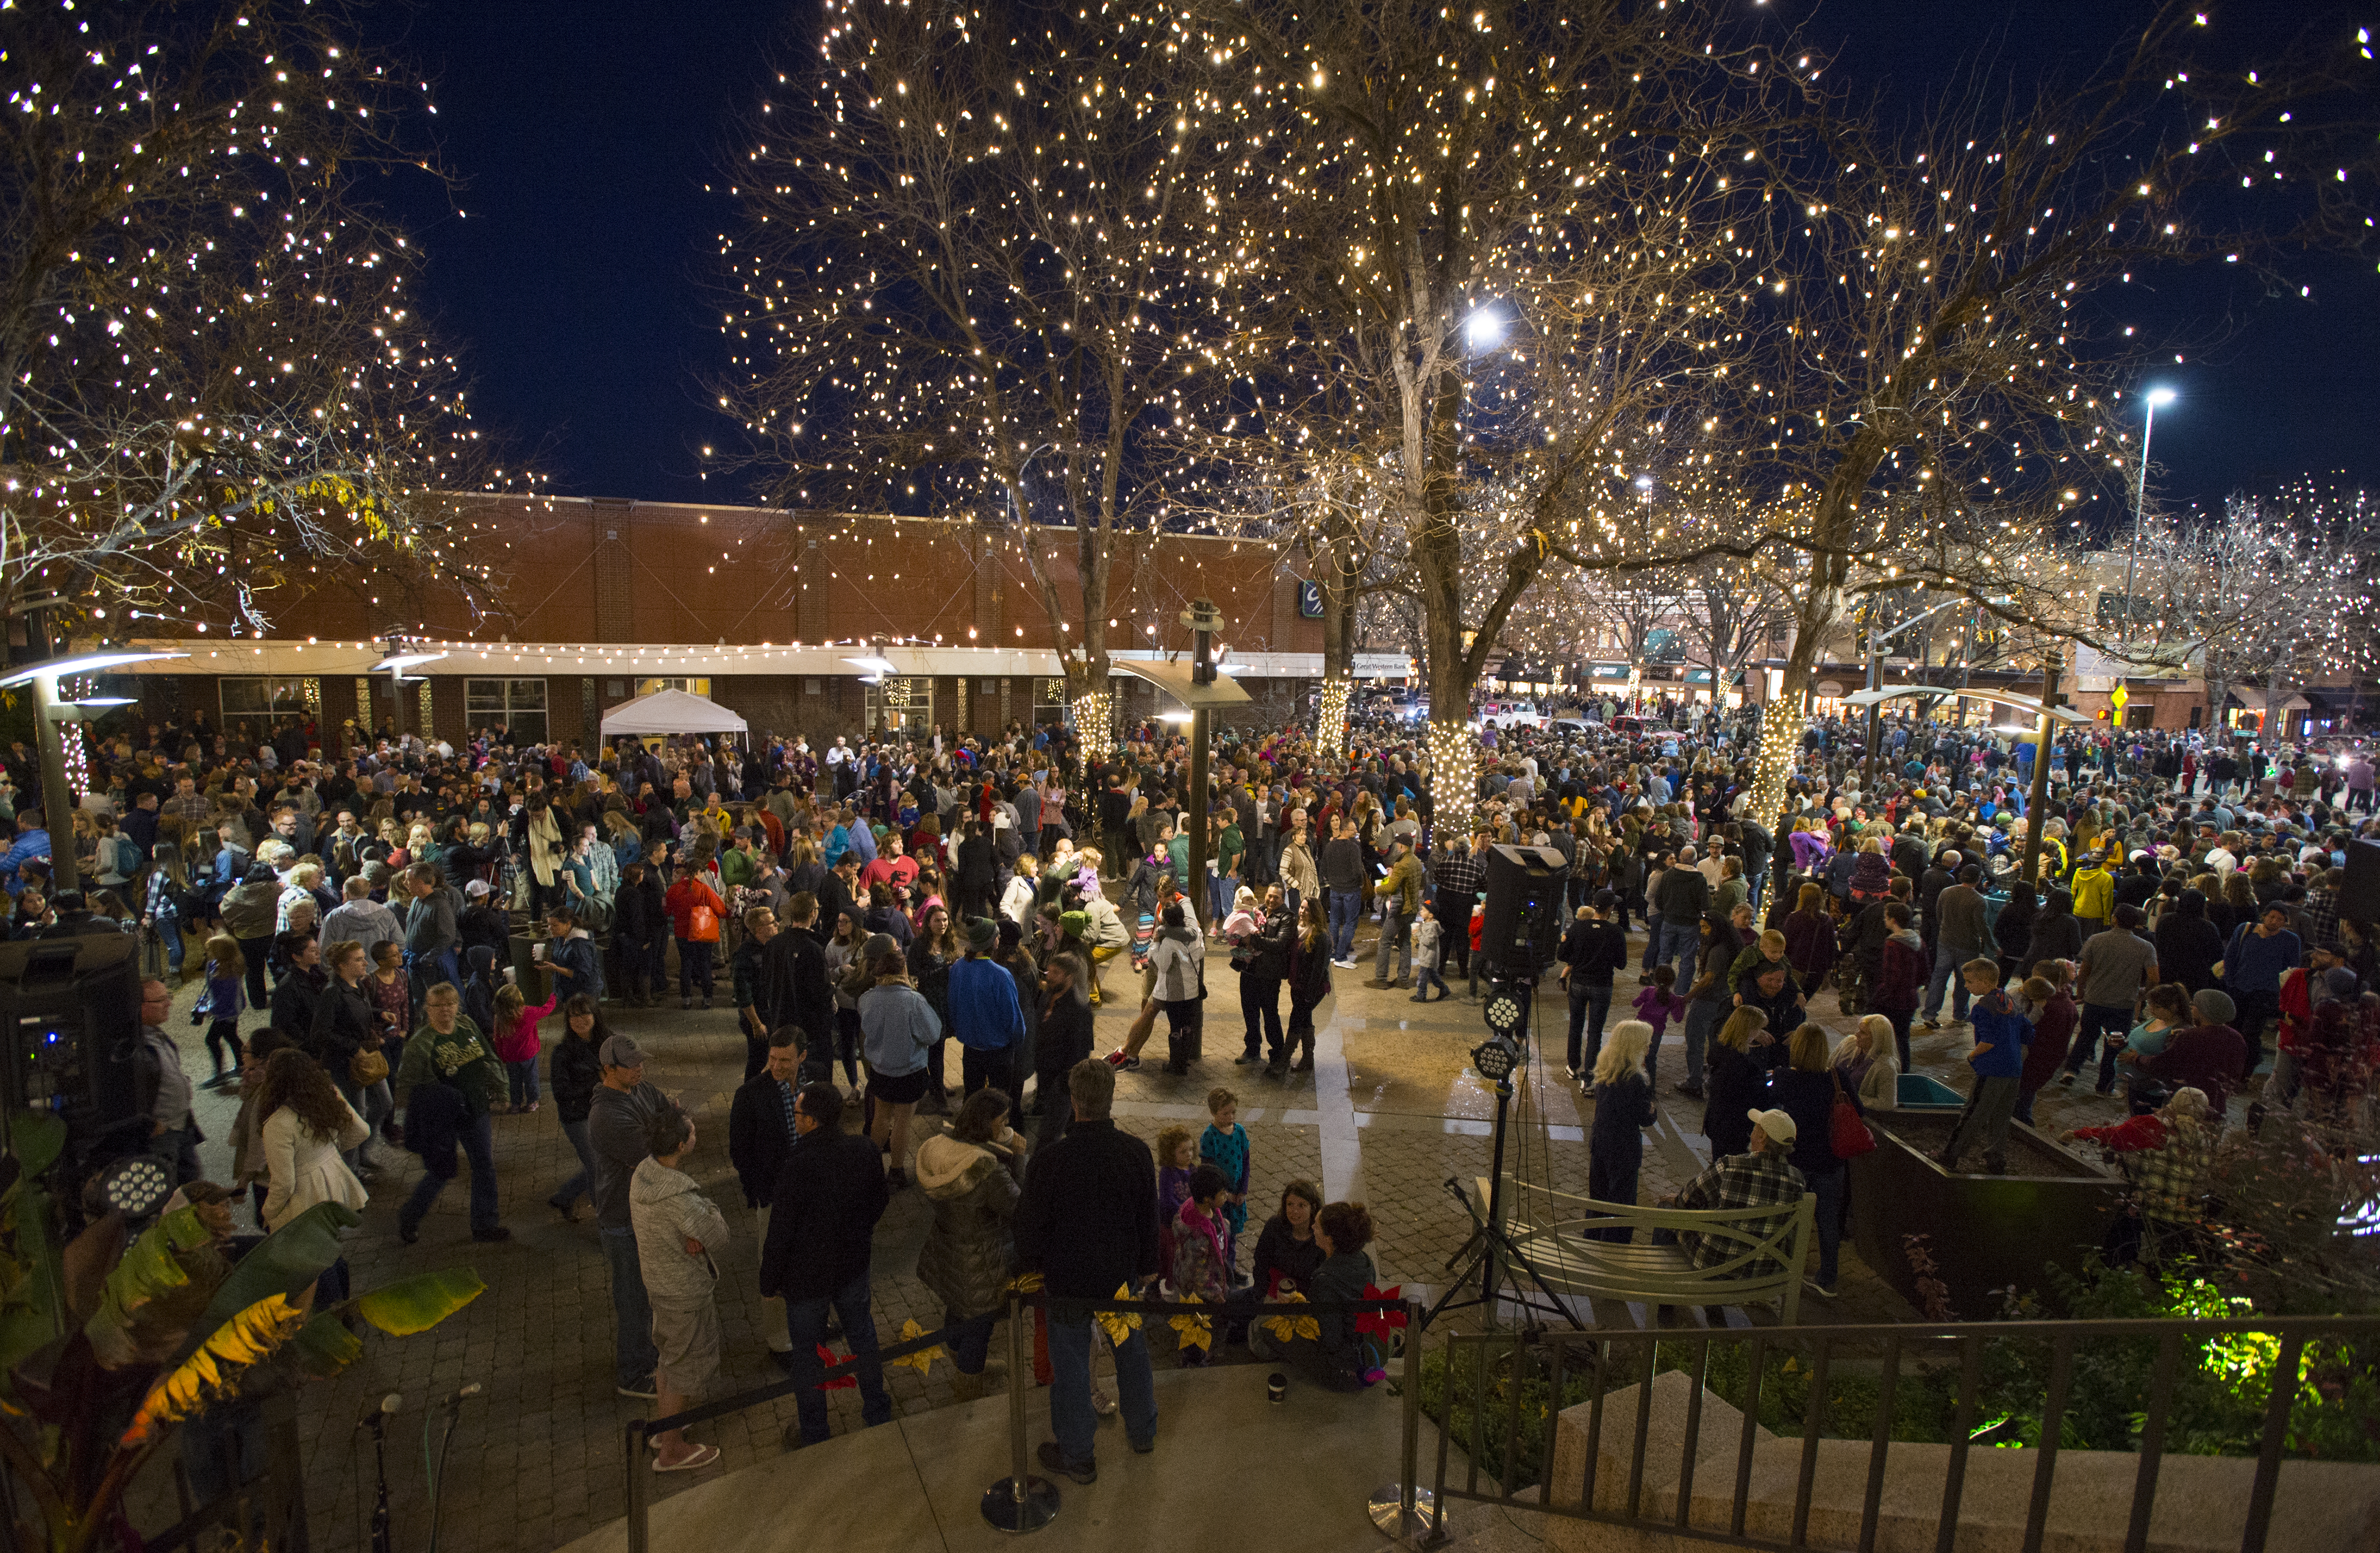 Fort Collins Christmas Events 2020 Best Holiday Light Displays in Fort Collins